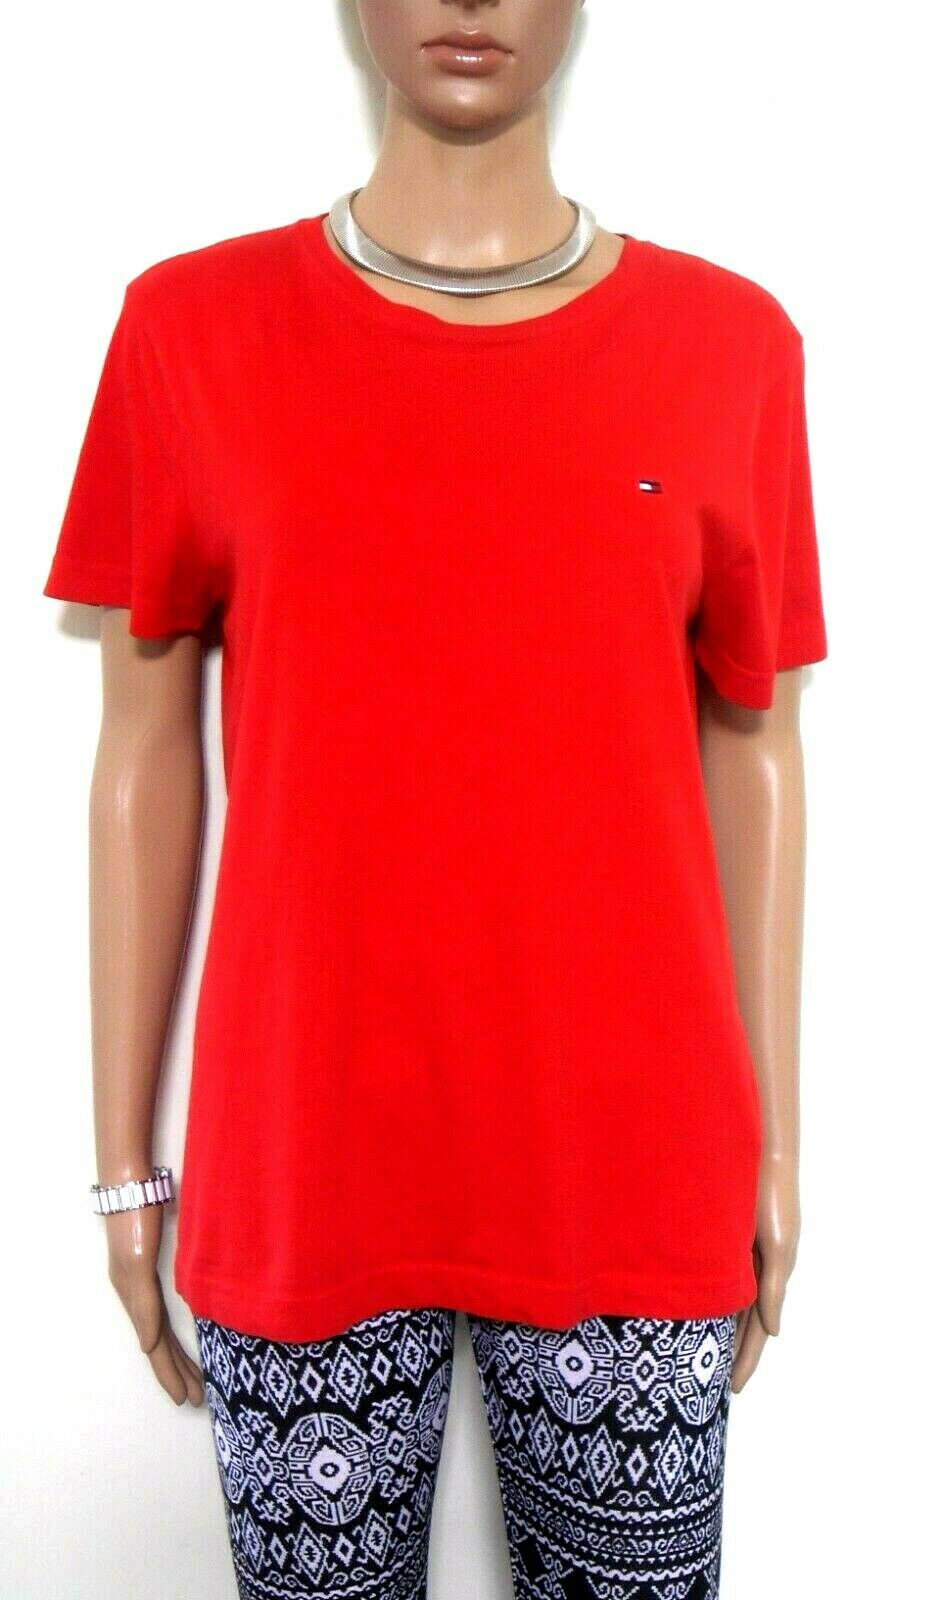 Tommy Hilfiger red sporty tee top, sz. 10-12/S, near new